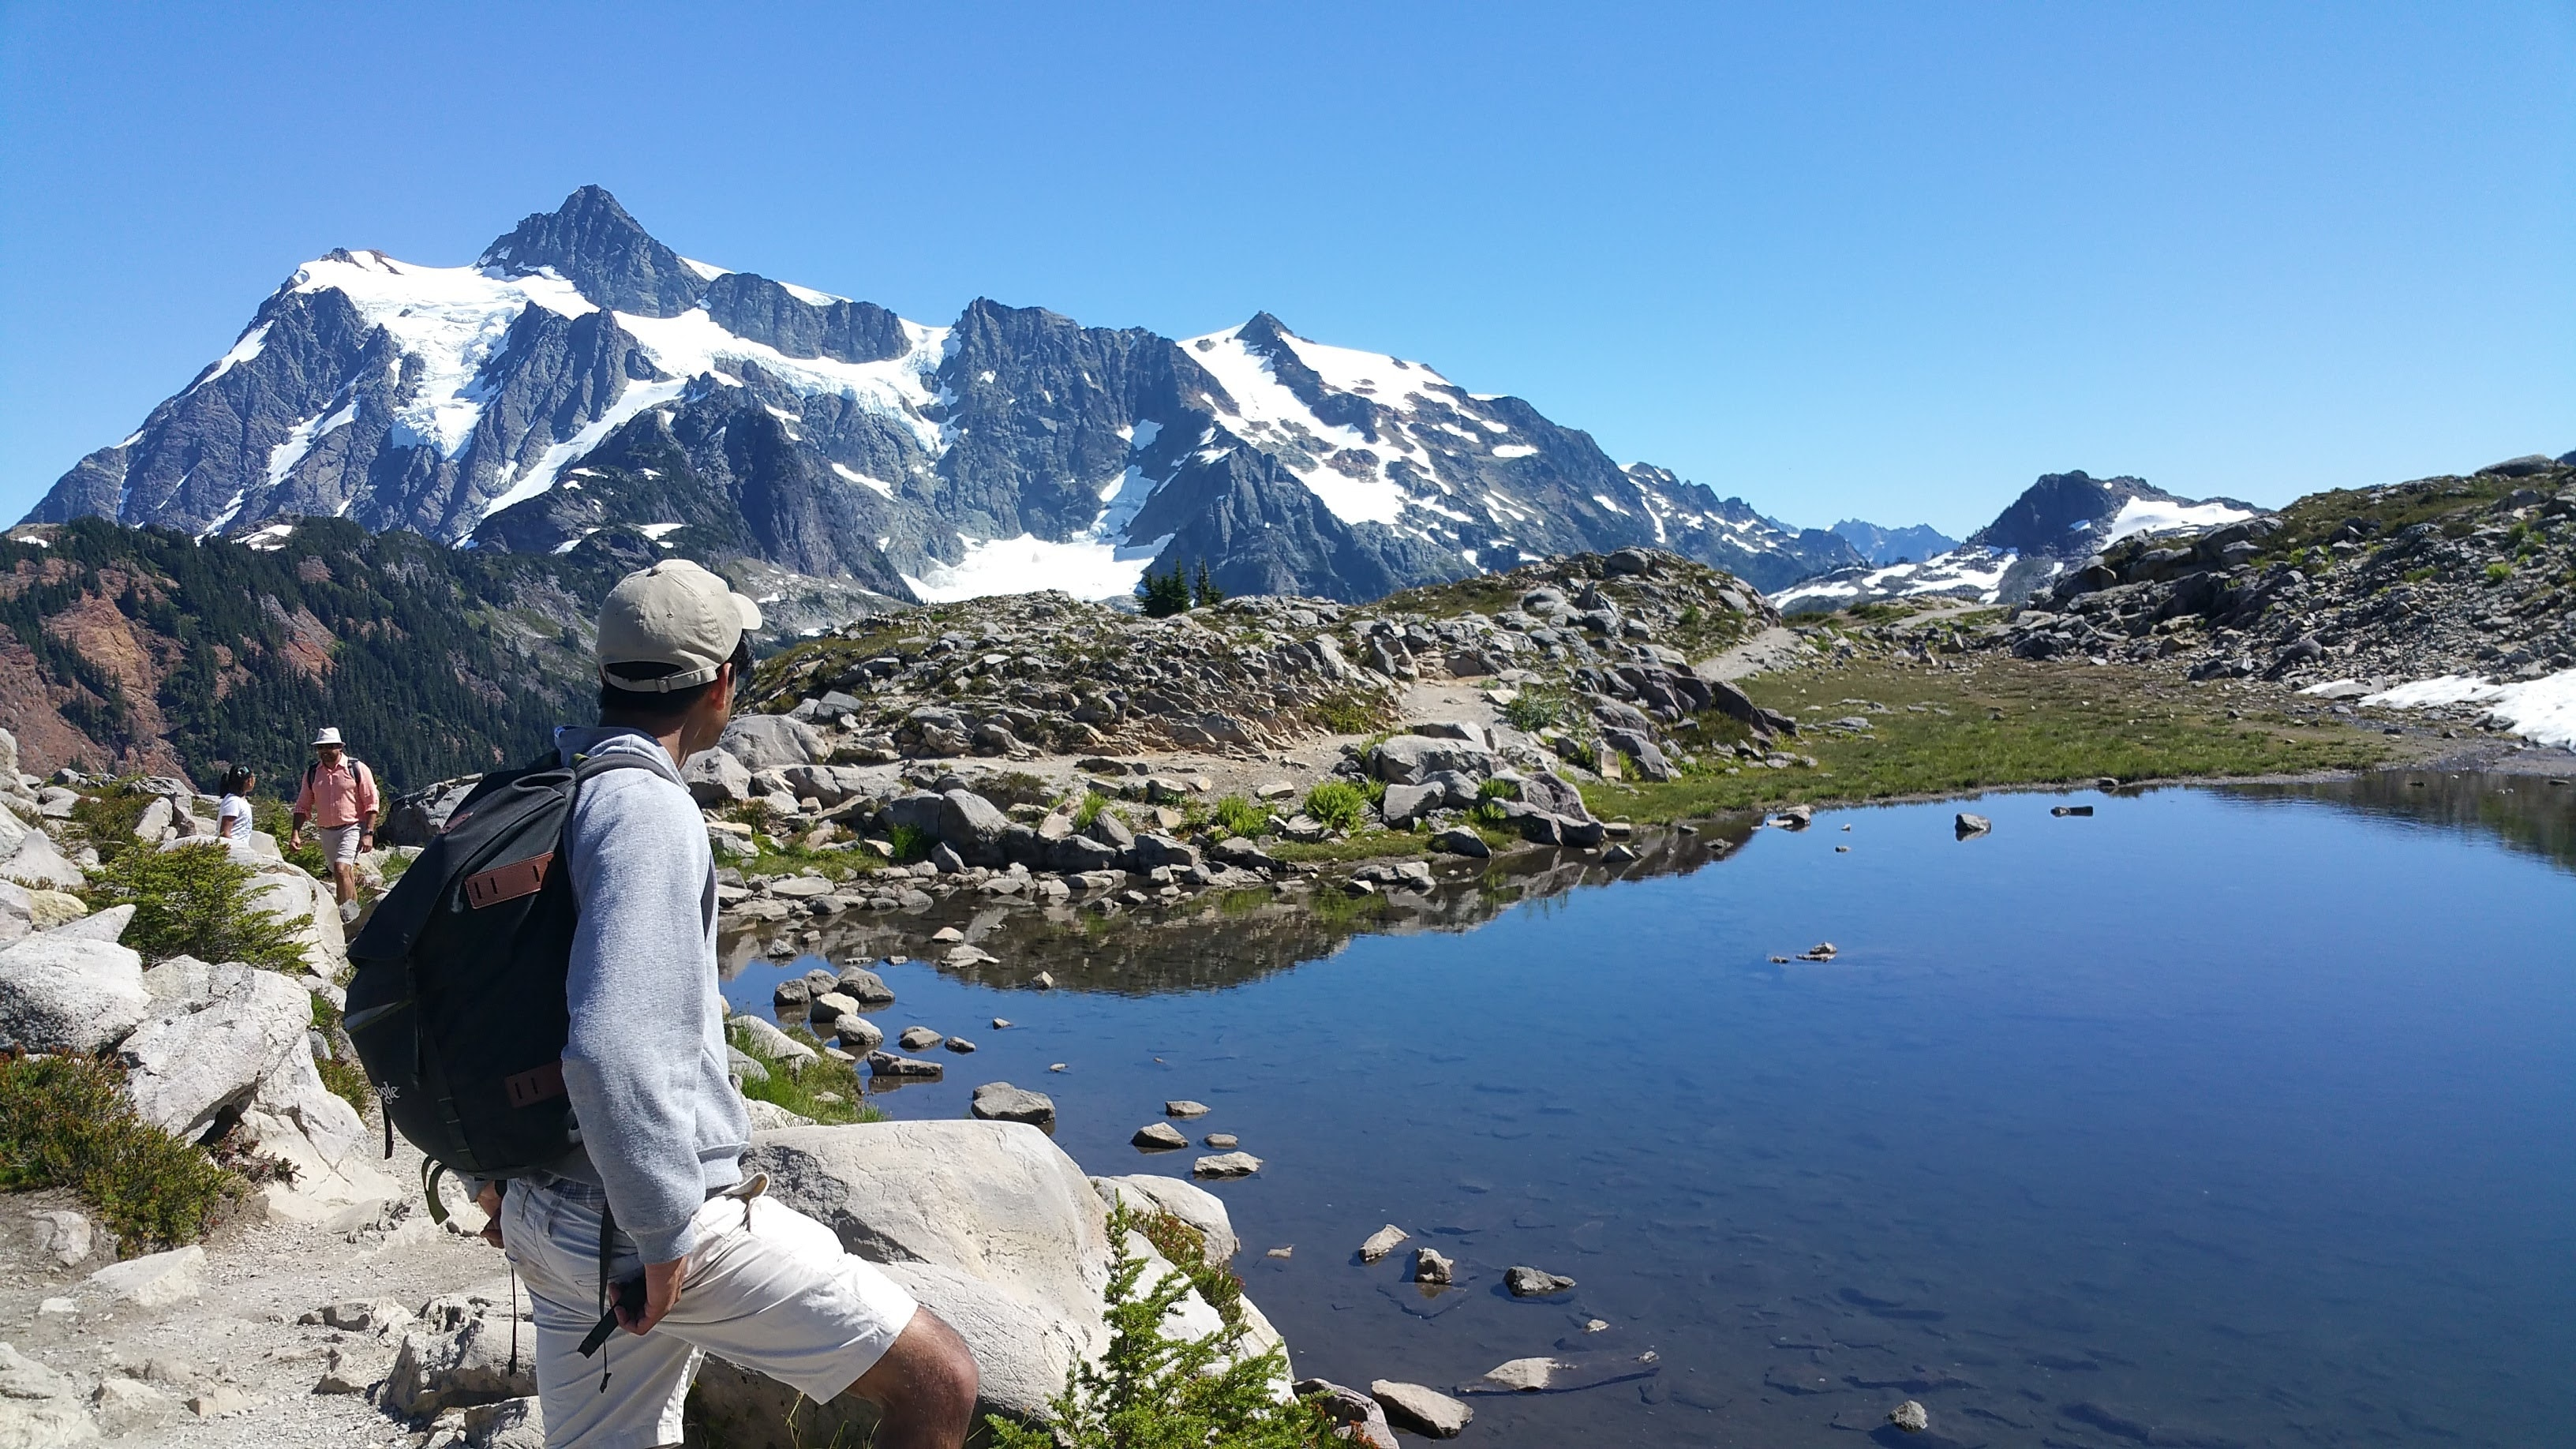 Hiker looks at Mount Shuksan, Washington